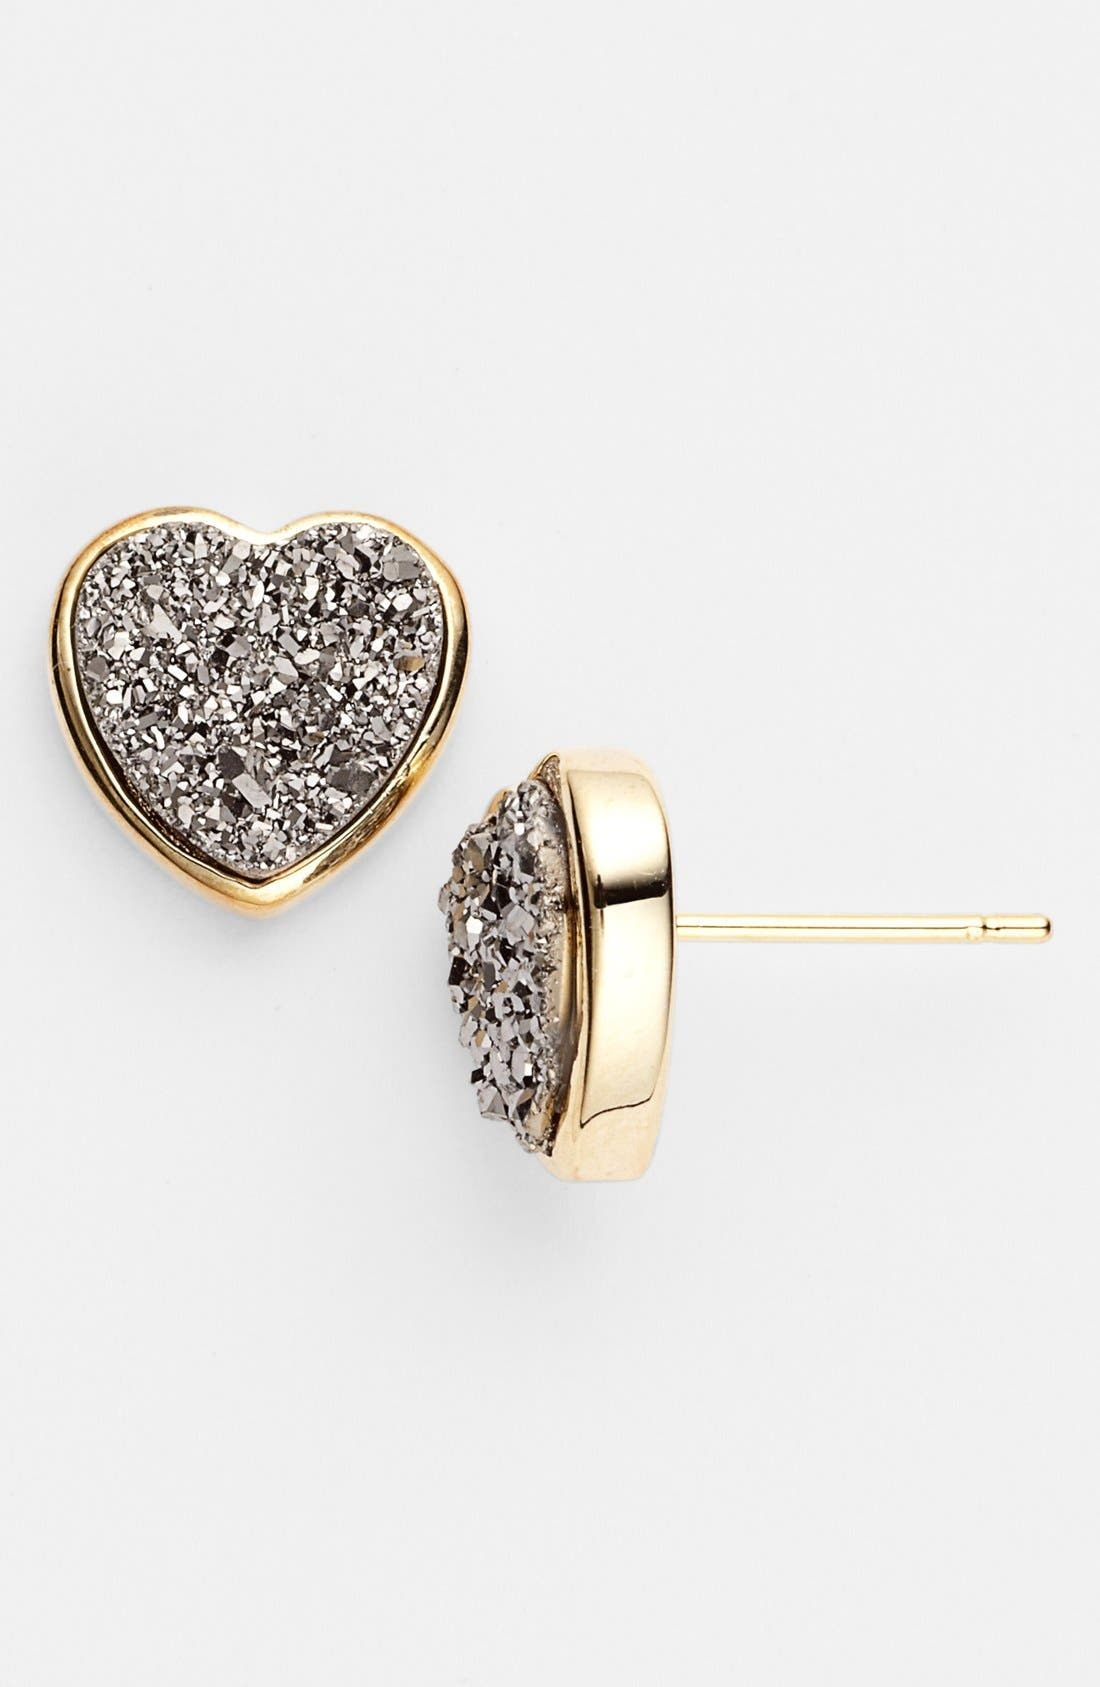 Alternate Image 1 Selected - Marcia Moran 'Drusy Extravaganza' Heart Stud Earrings (Online Only)